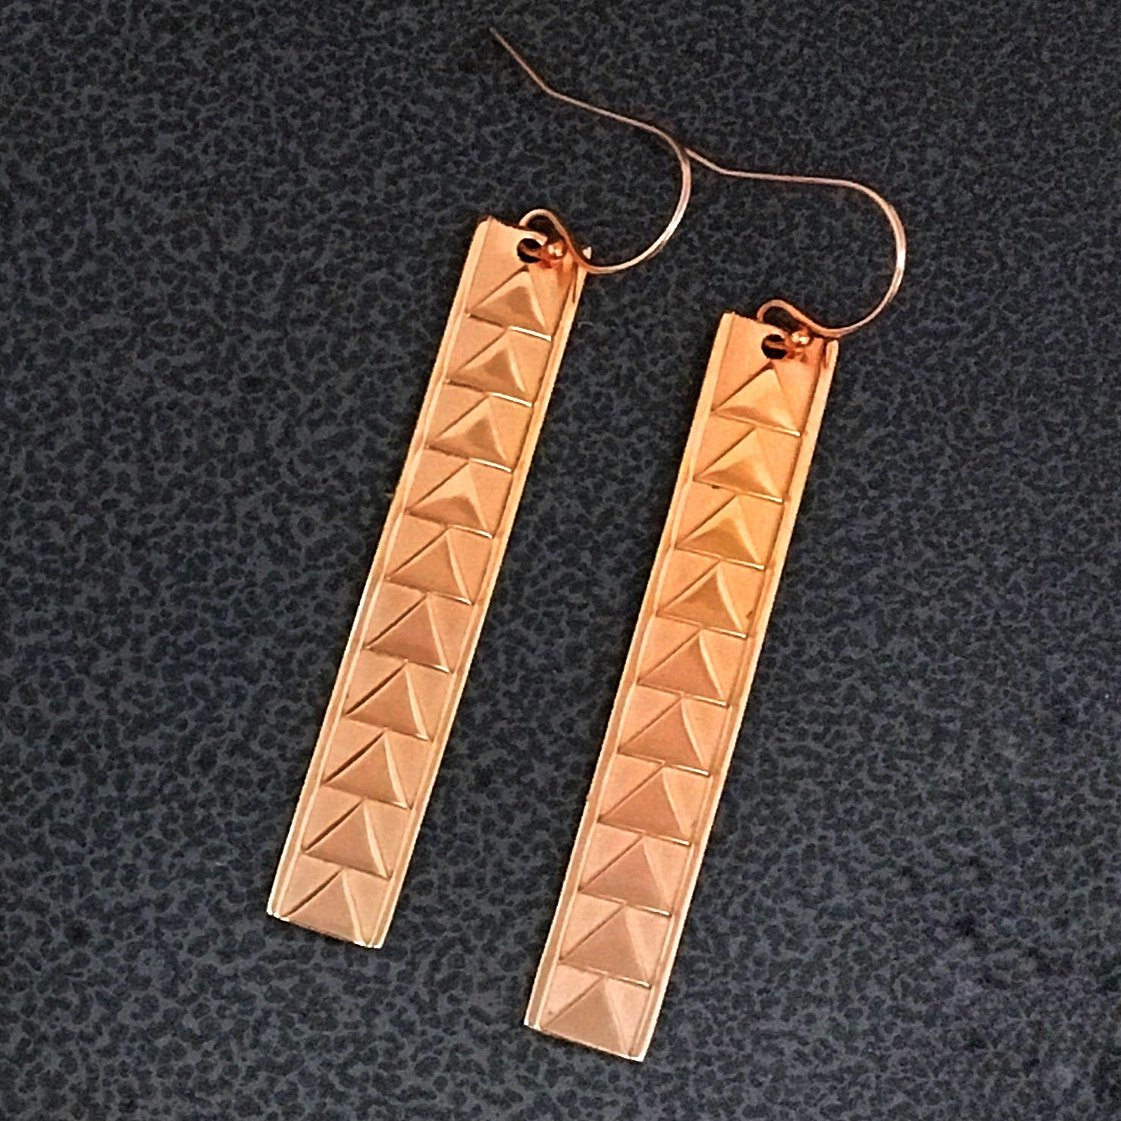 Hawaiian Bar Earrings with Triangle Designs: Rose Gold Vermeil